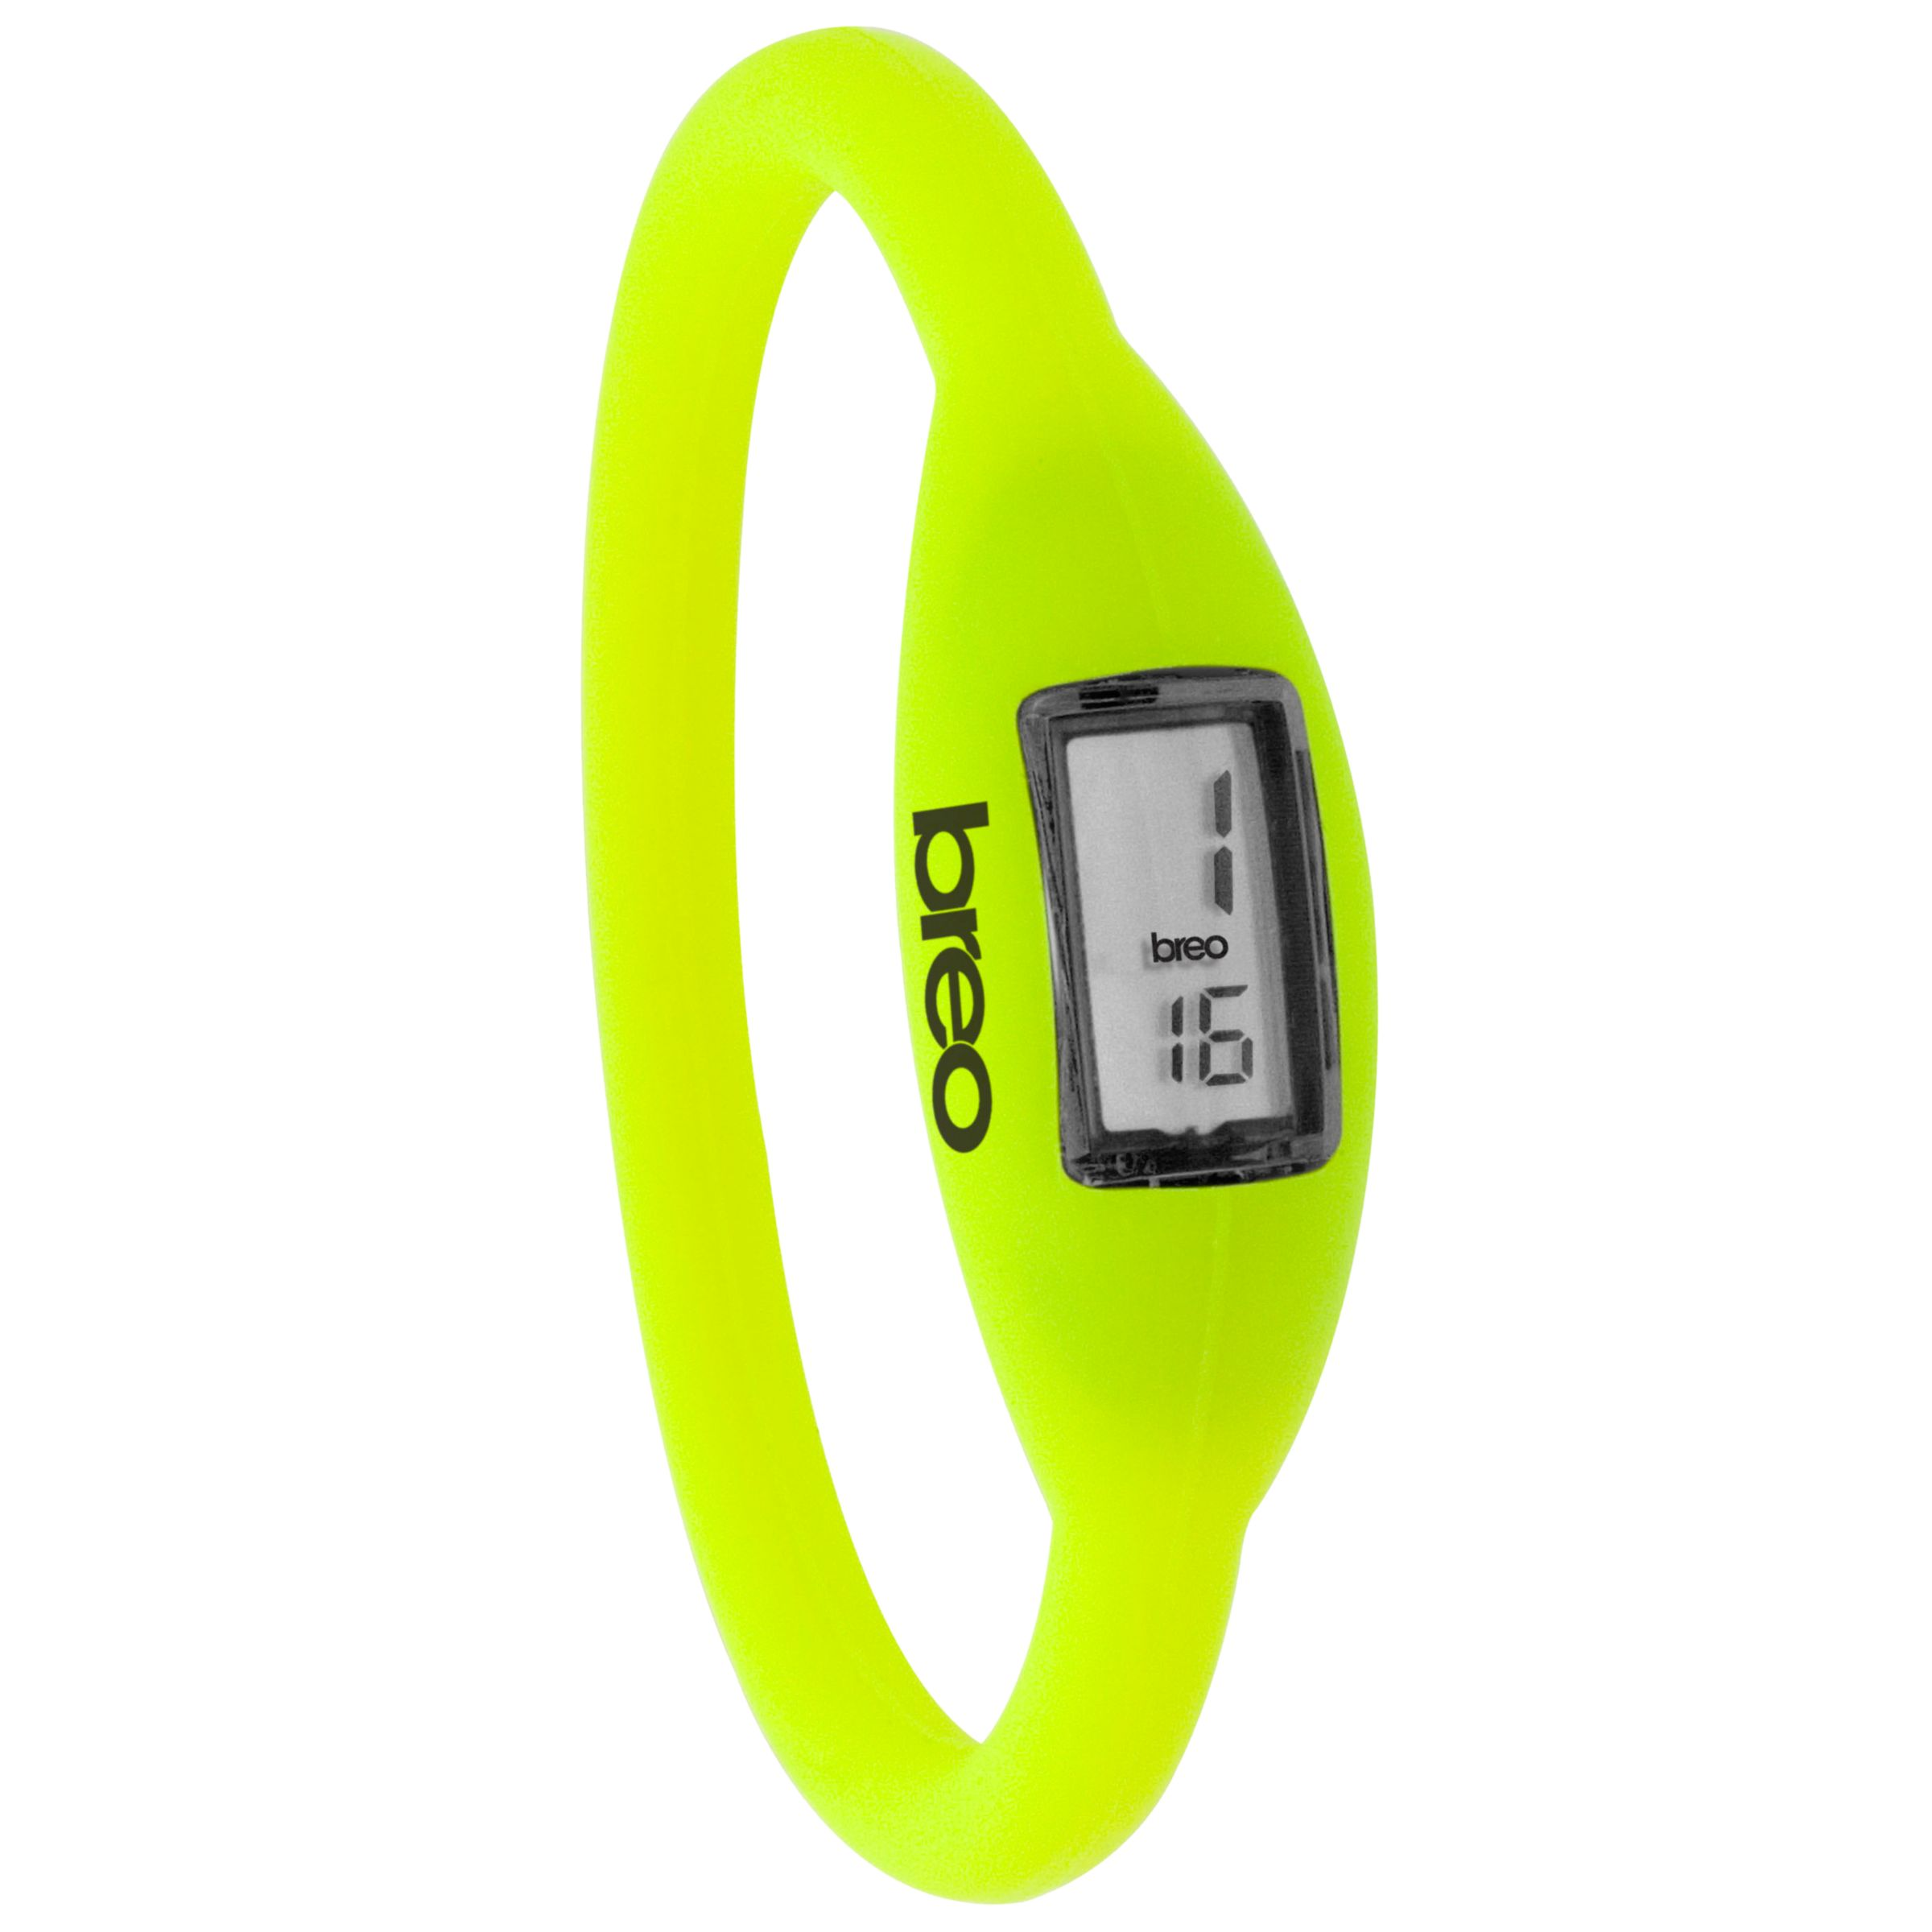 Breo Roam B-TI-NR6 Digital Watch, Fluro Yellow